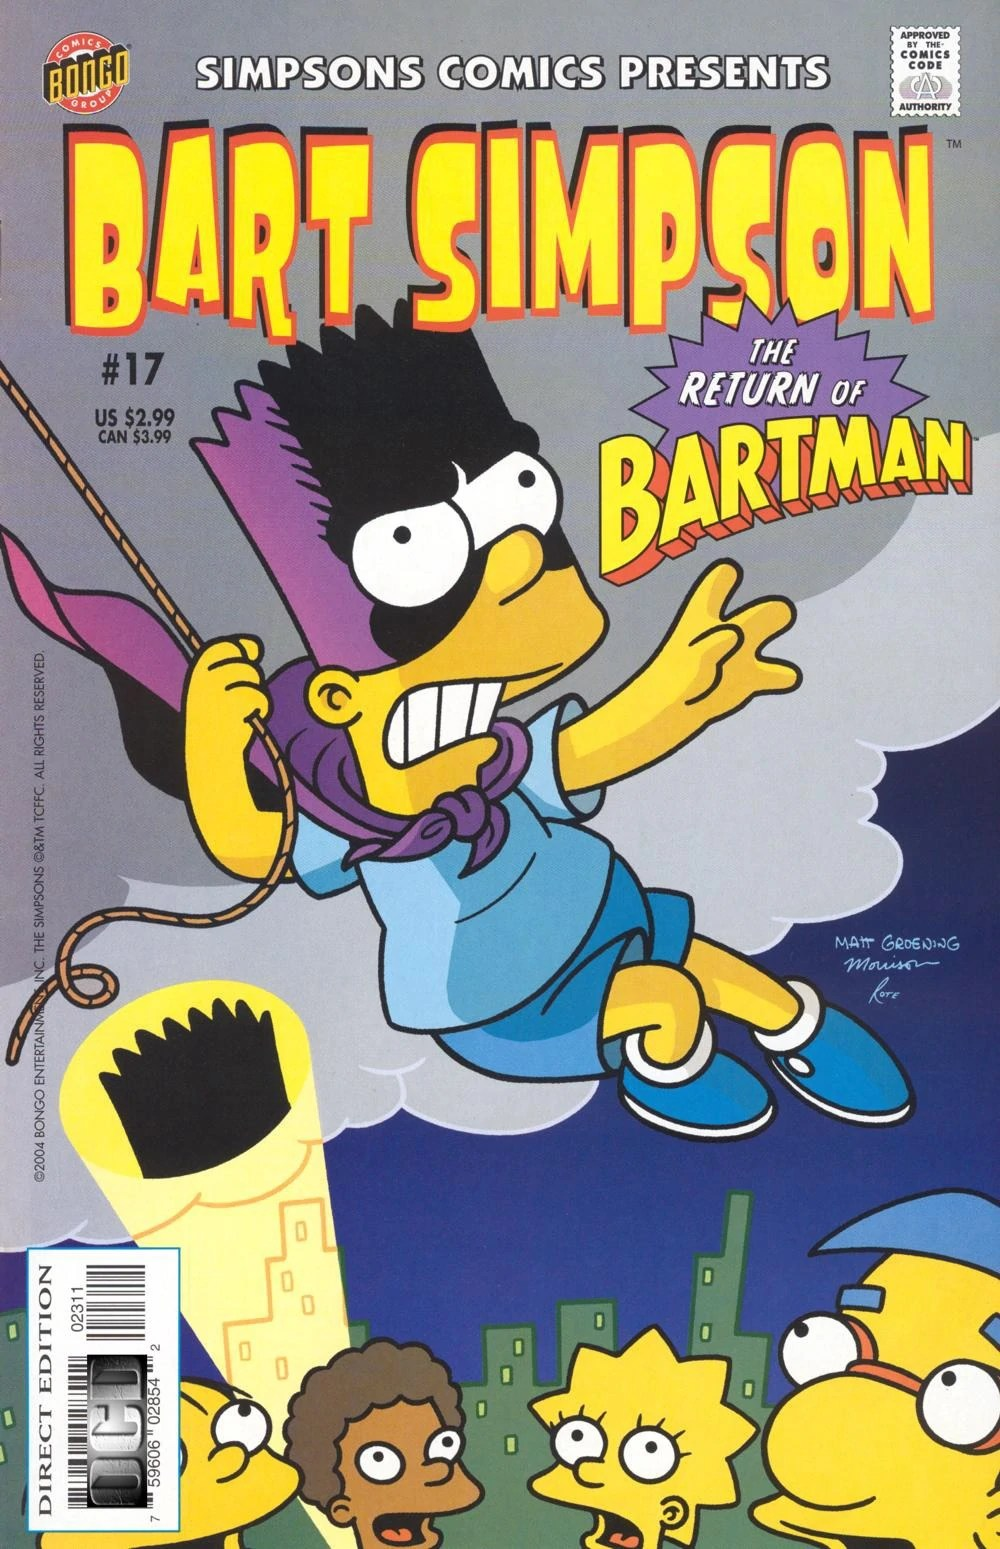 Fall Out Boy Wallpaper Pc Bart Simpson Comics 17 Simpsons Wiki Fandom Powered By